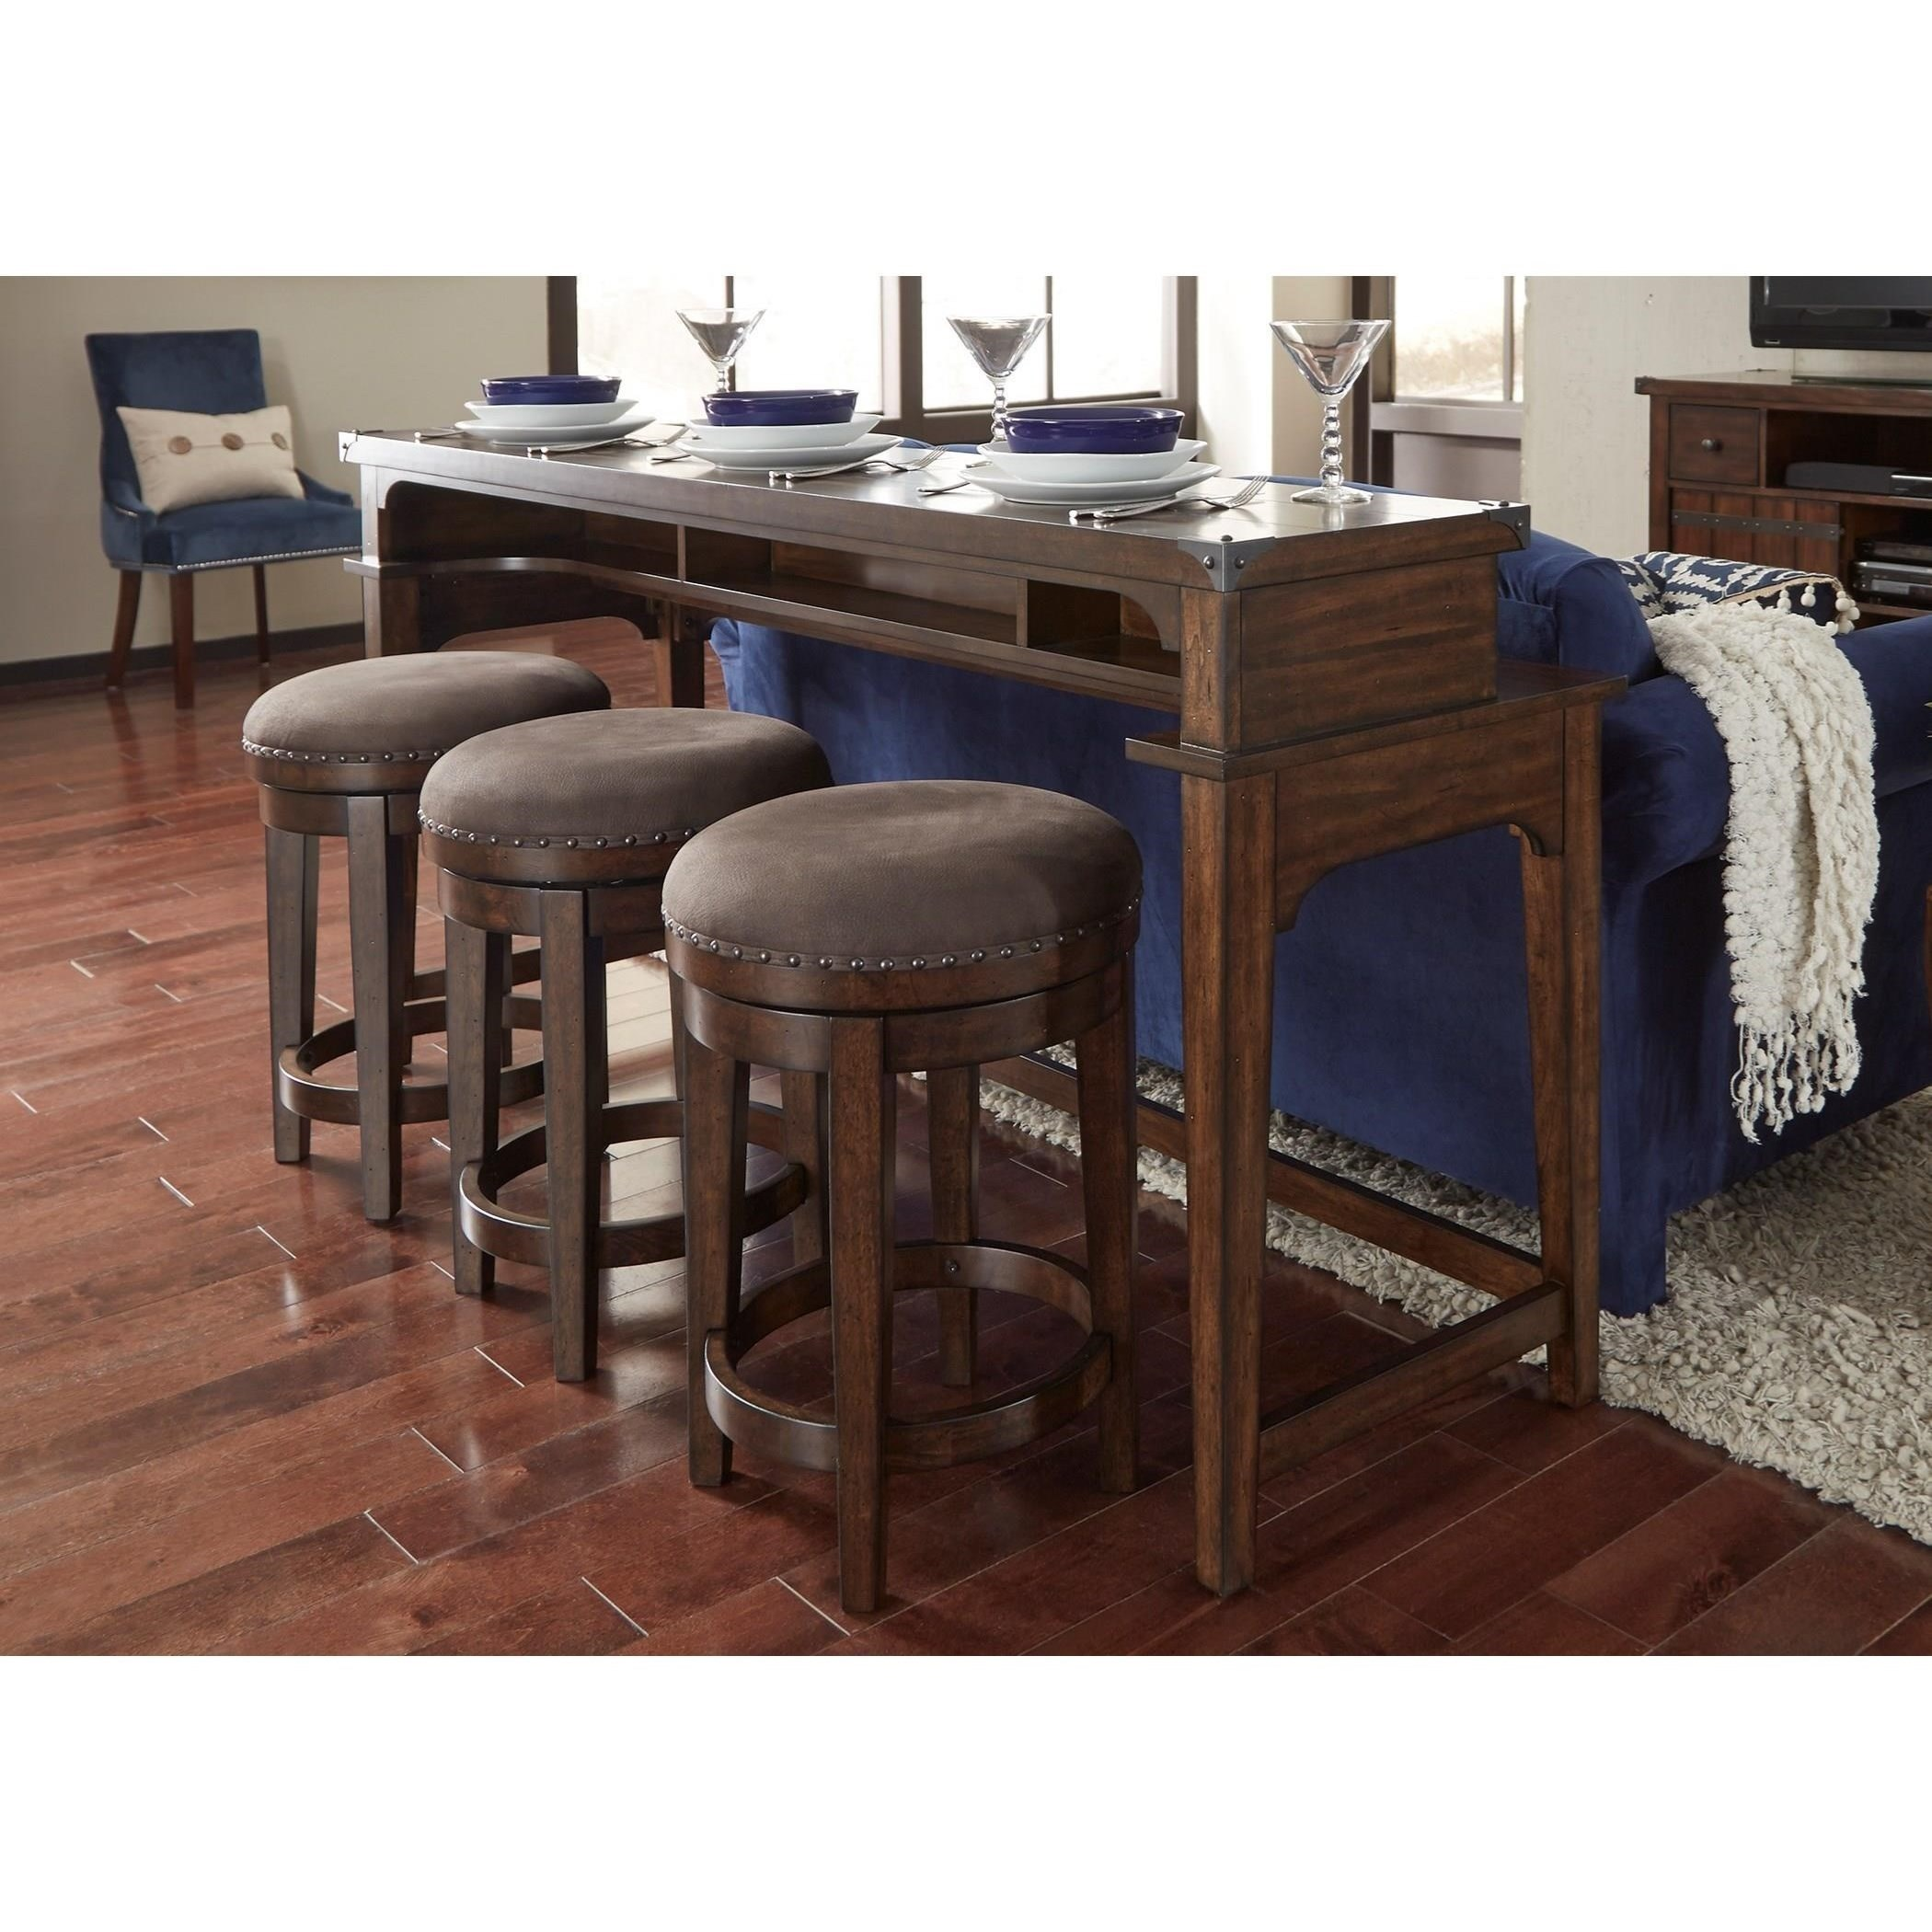 Picture of: Liberty Furniture Aspen Skies Counter Height Sofa Table And Swiveling Stool Set Royal Furniture Pub Table And Stool Sets